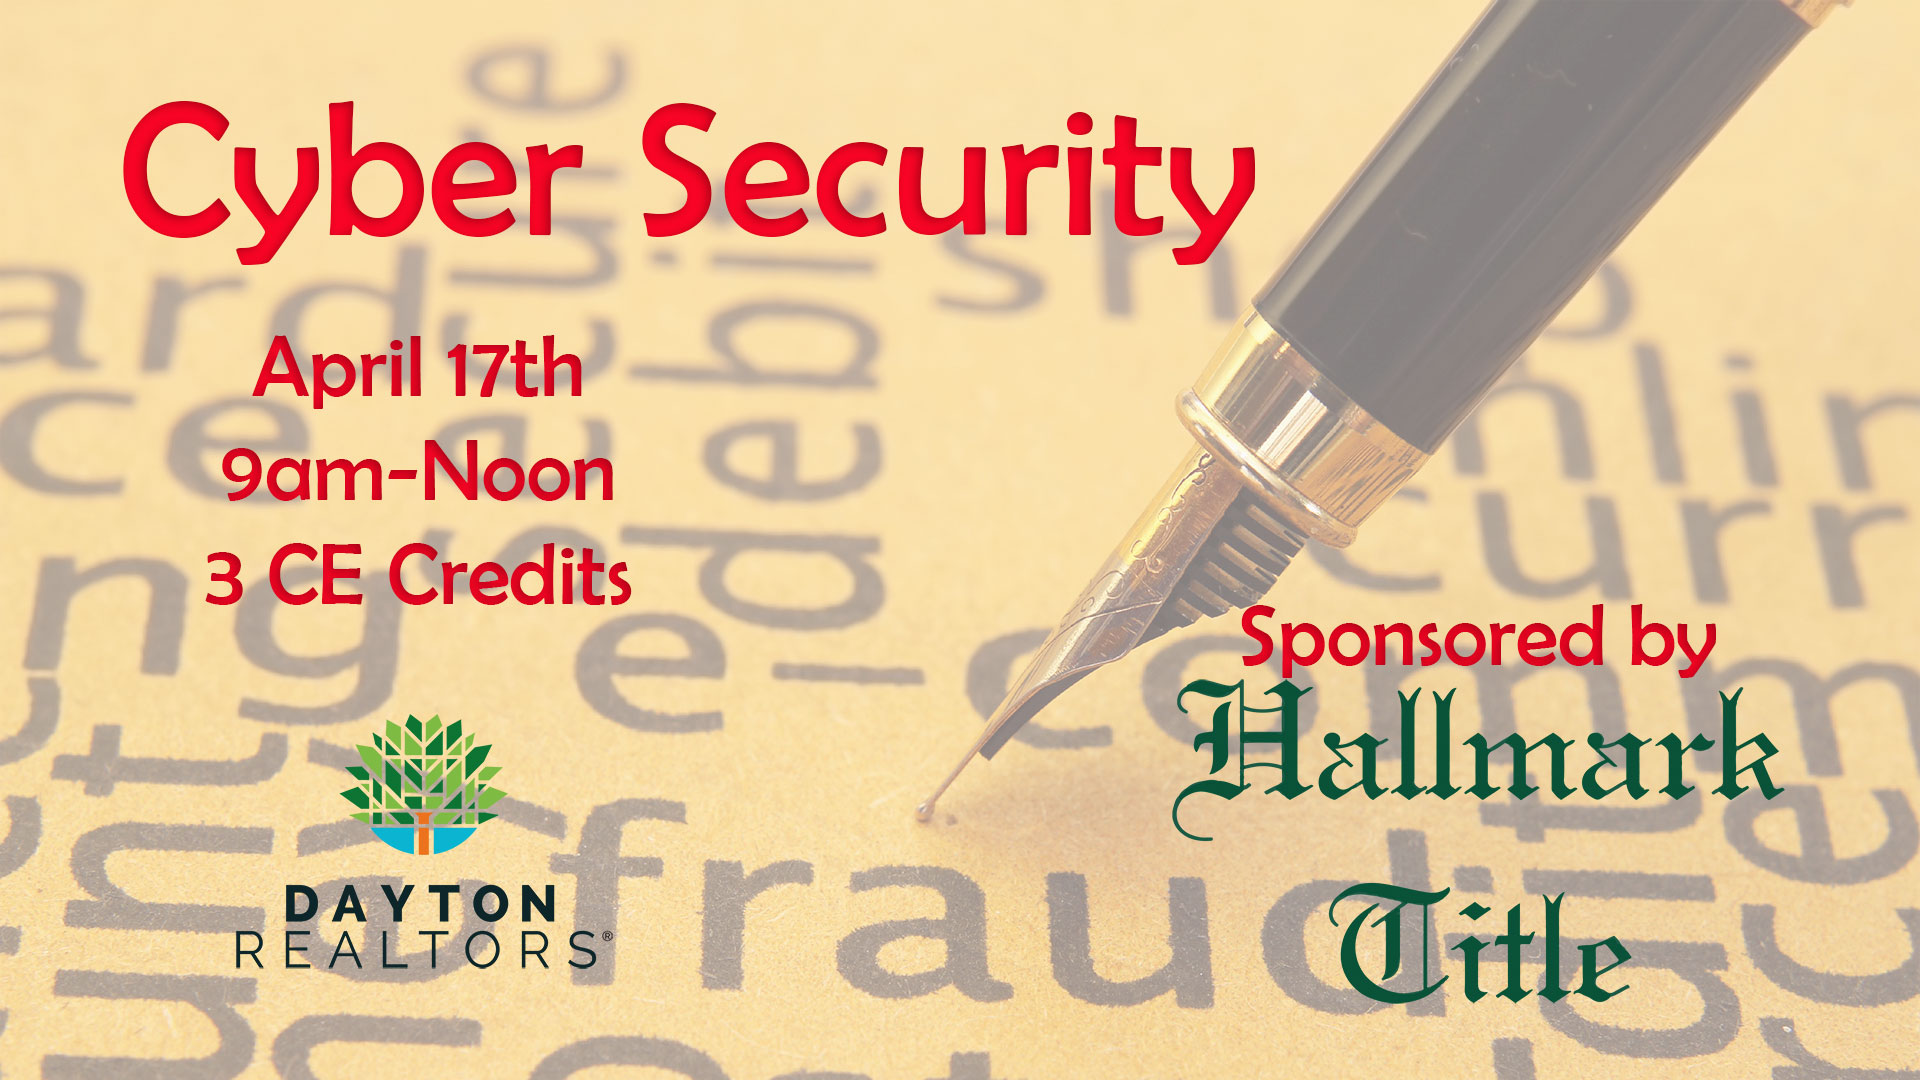 Cyber Security, April 17